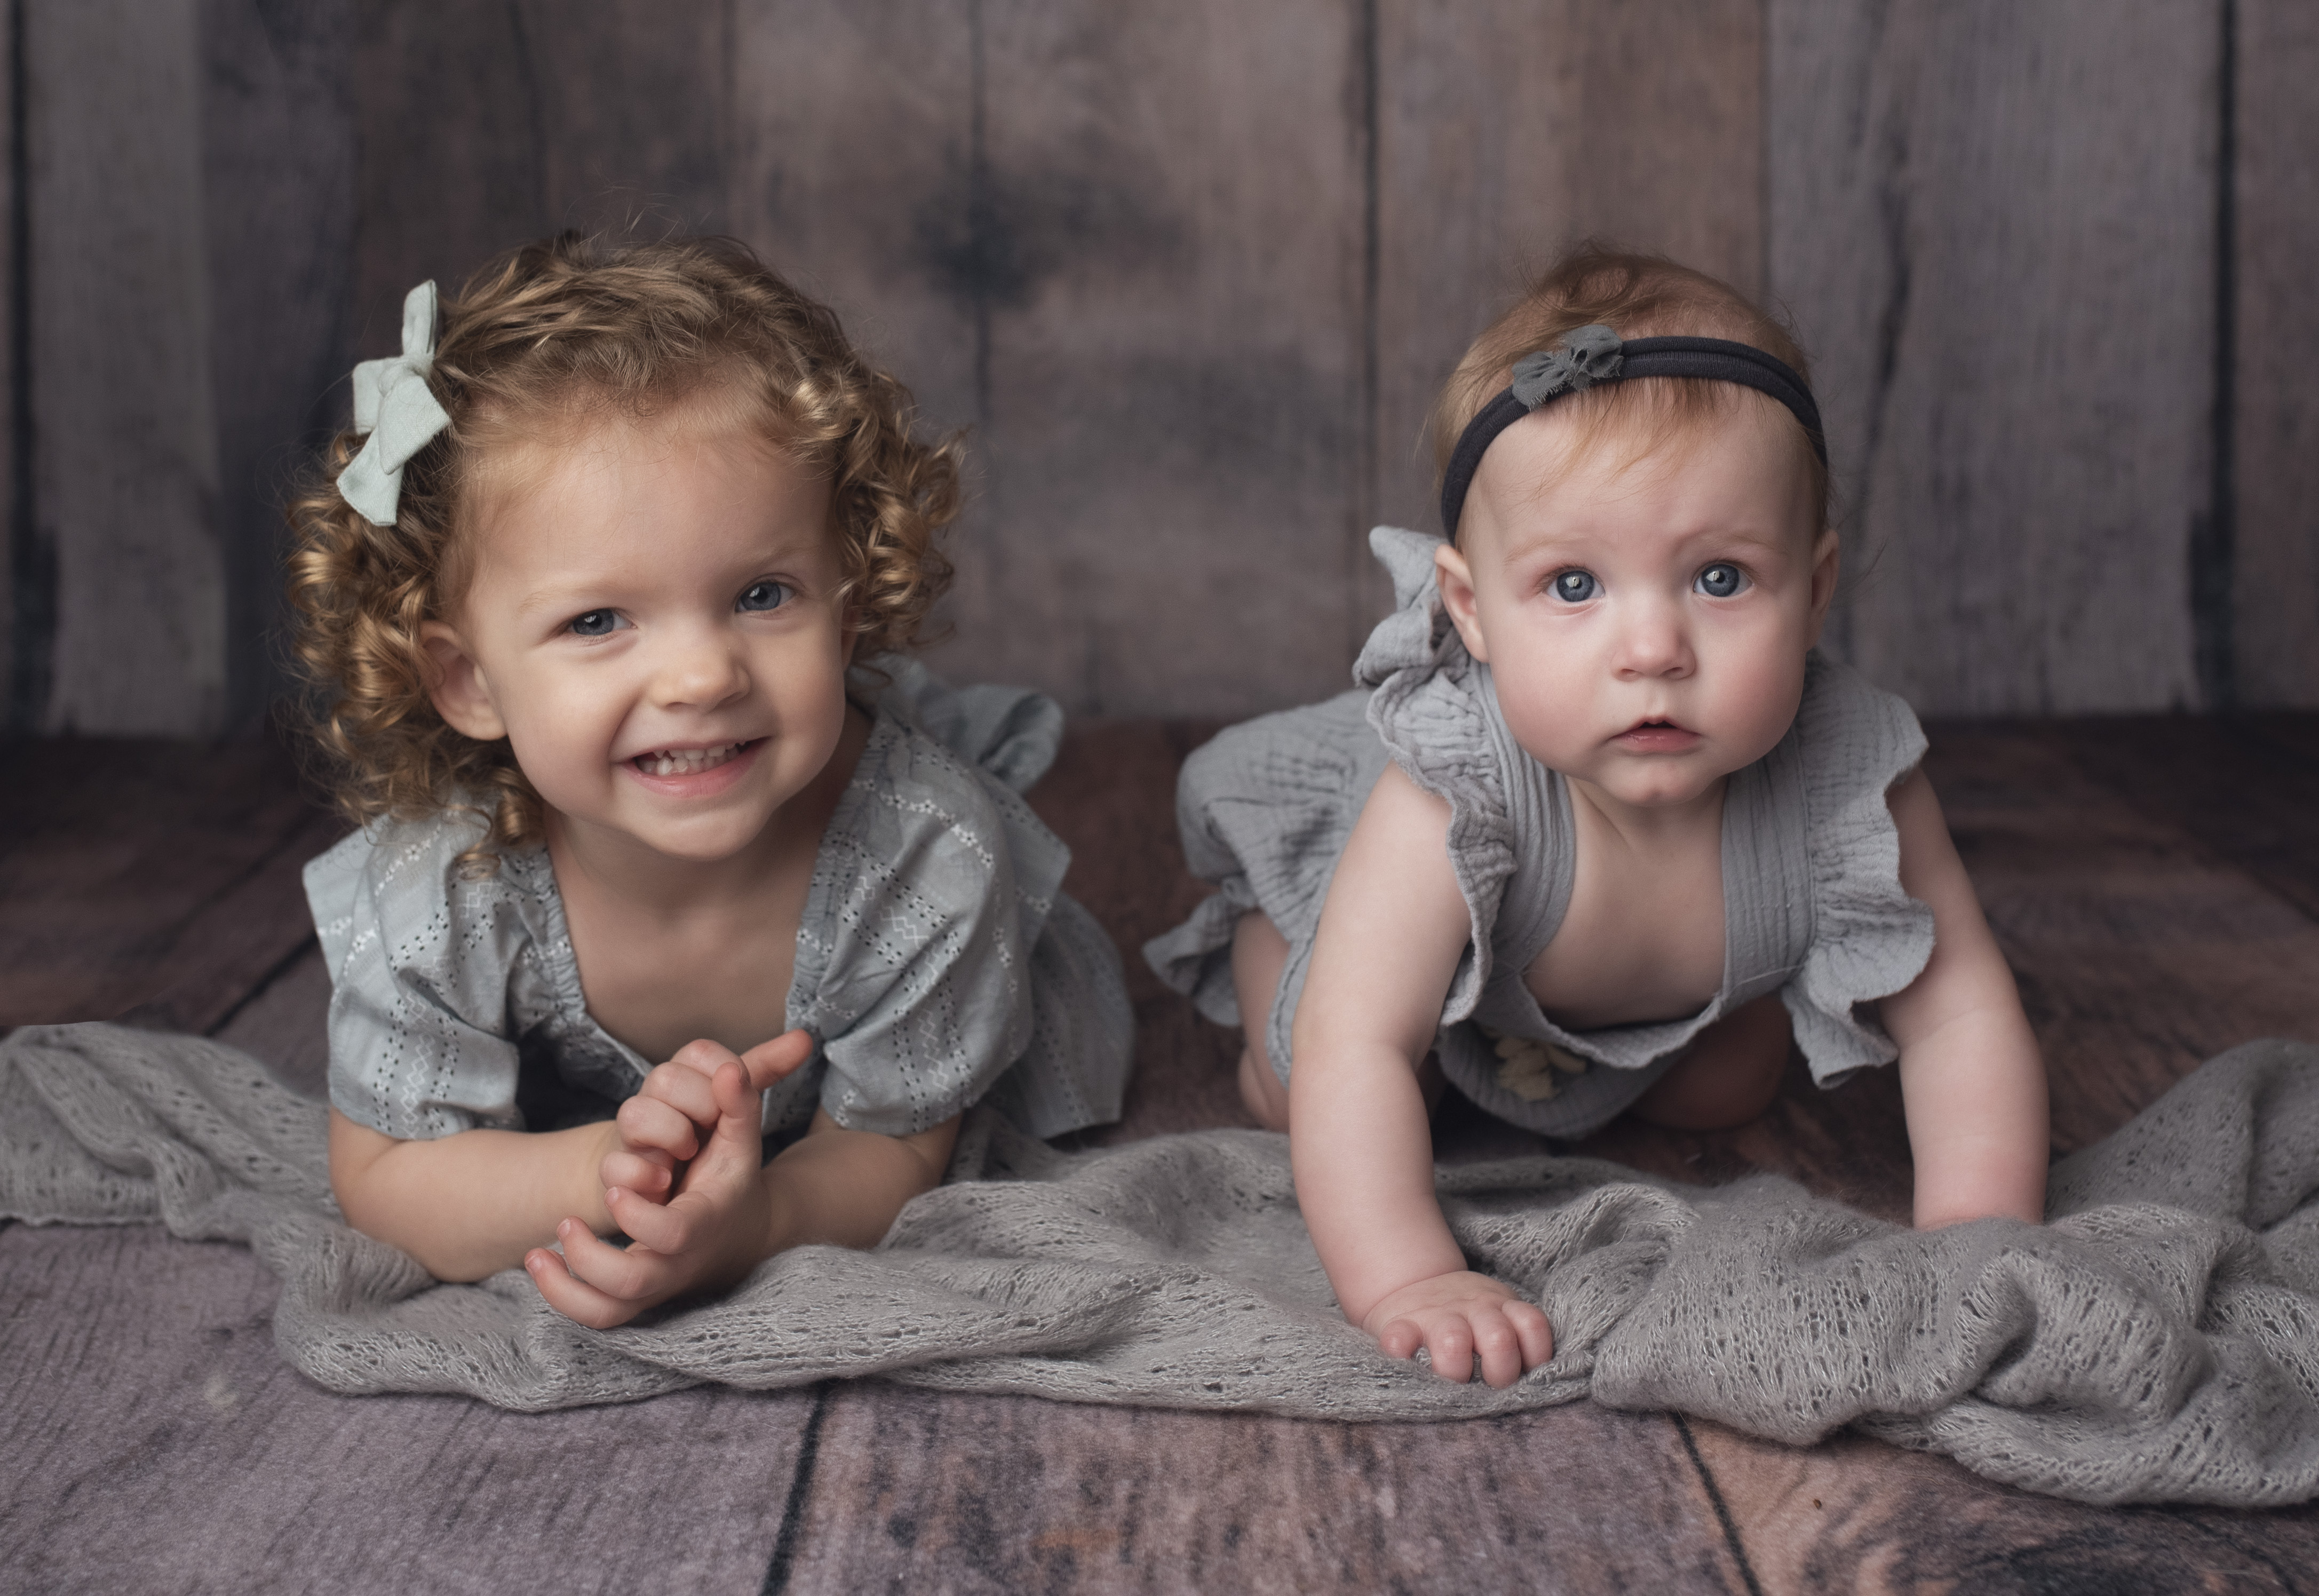 grand rapids milestone photography shoot 6 month sitter session girl with blue eyes